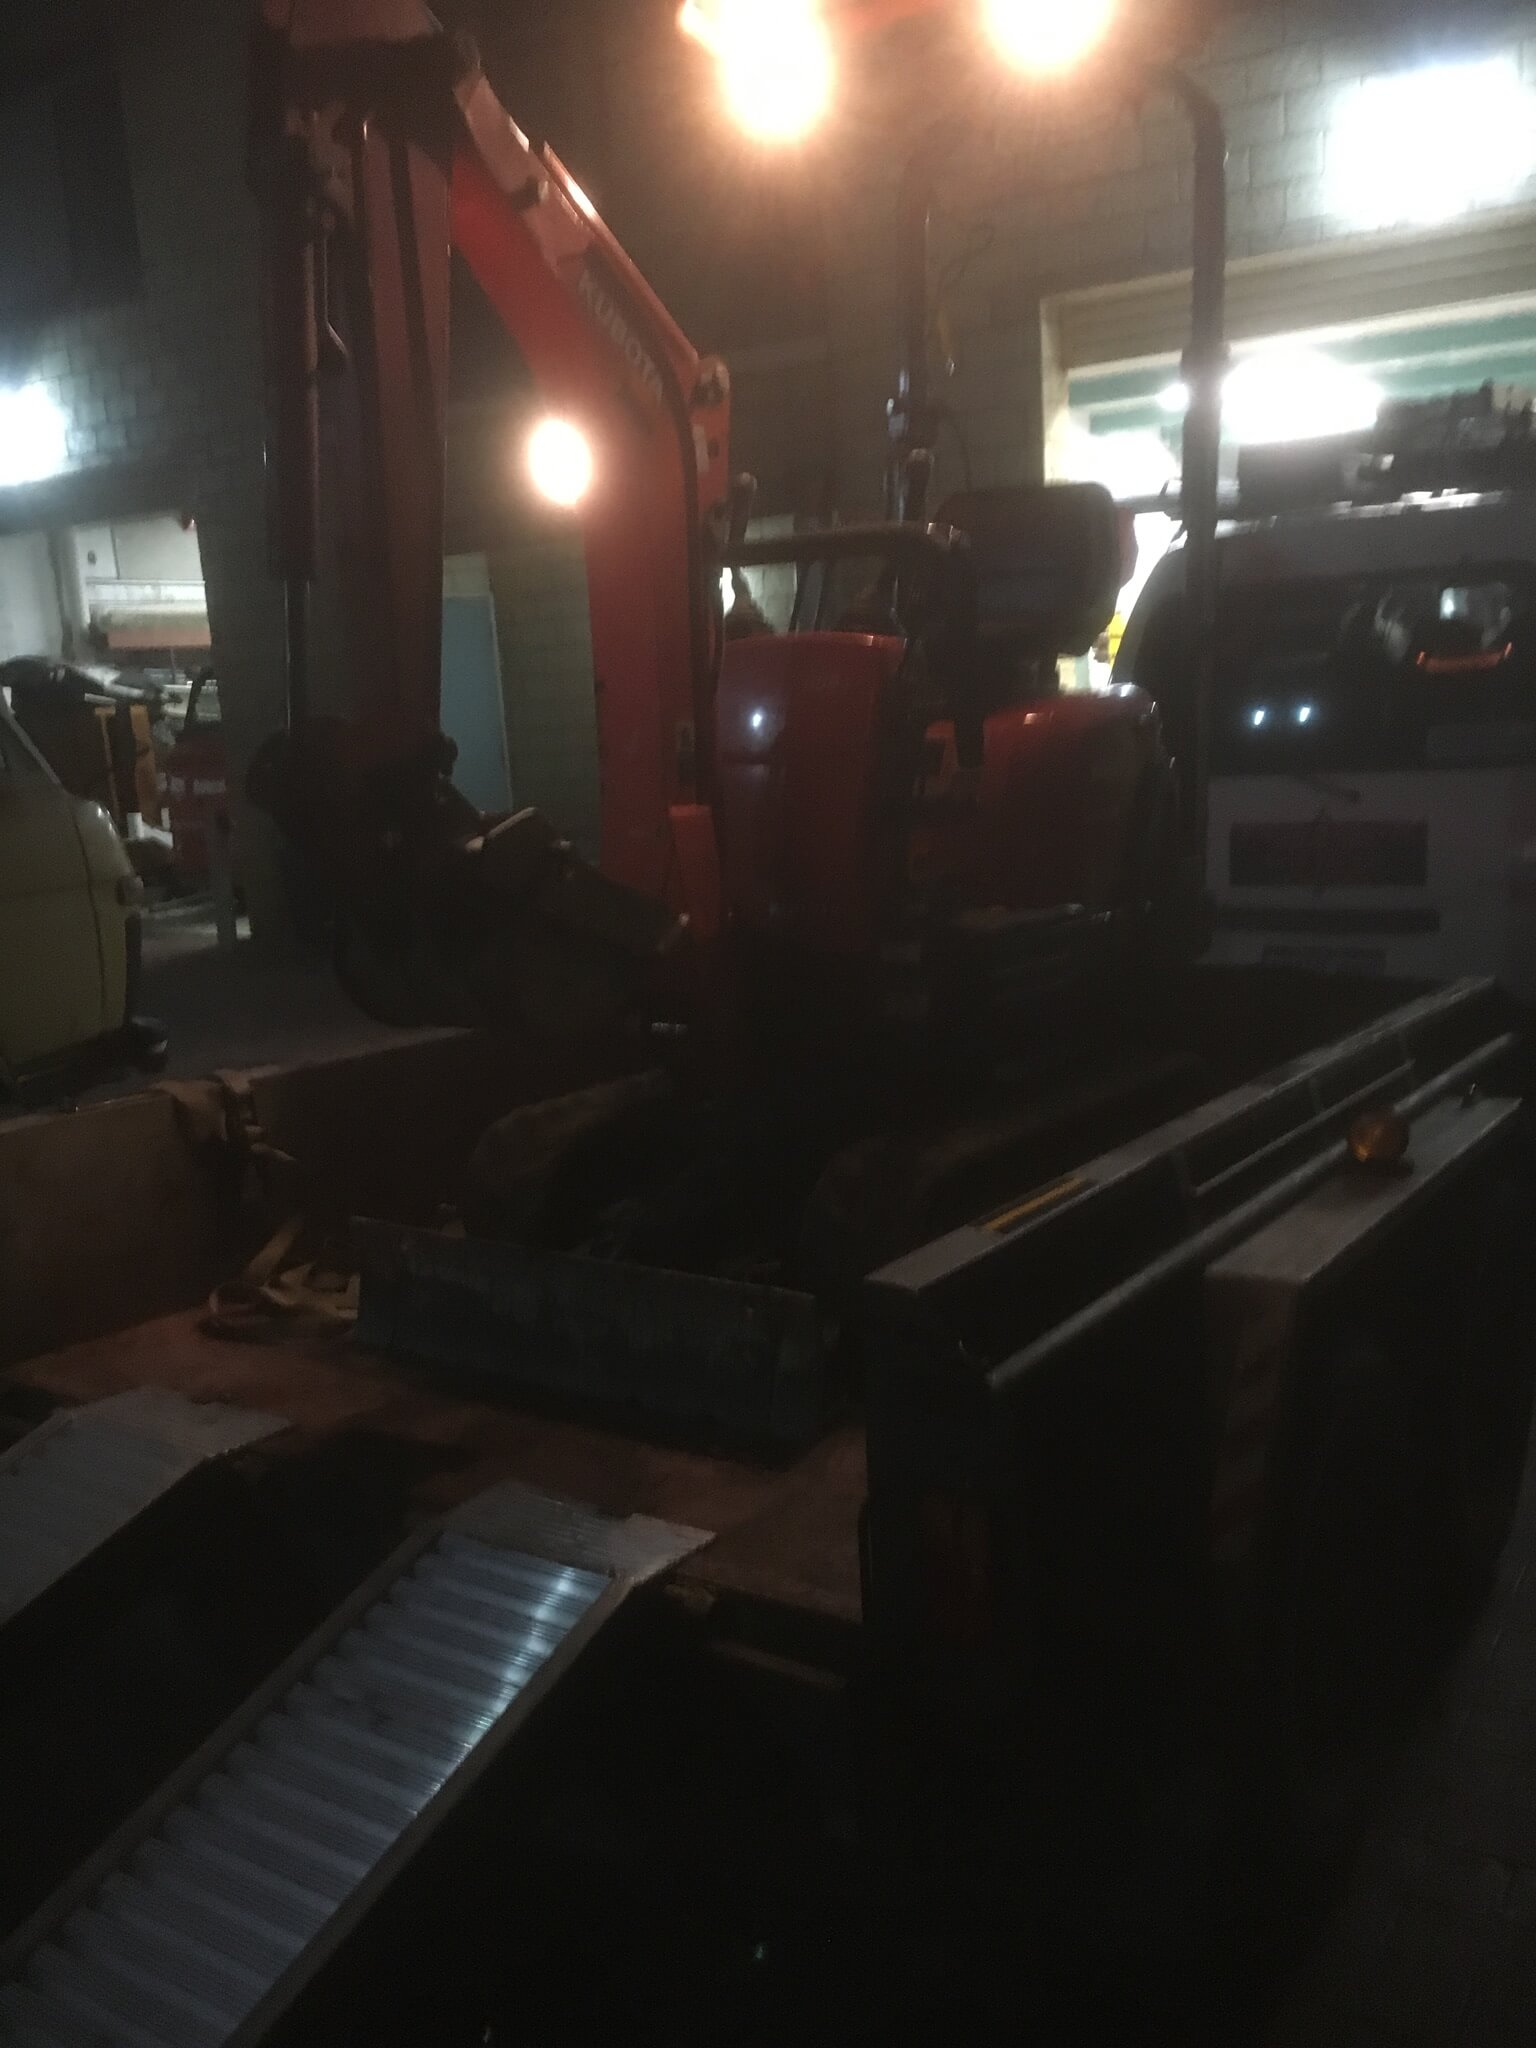 Everyday Plumbers Residential and Commercial Night Works - Onsite Works at Night 2042